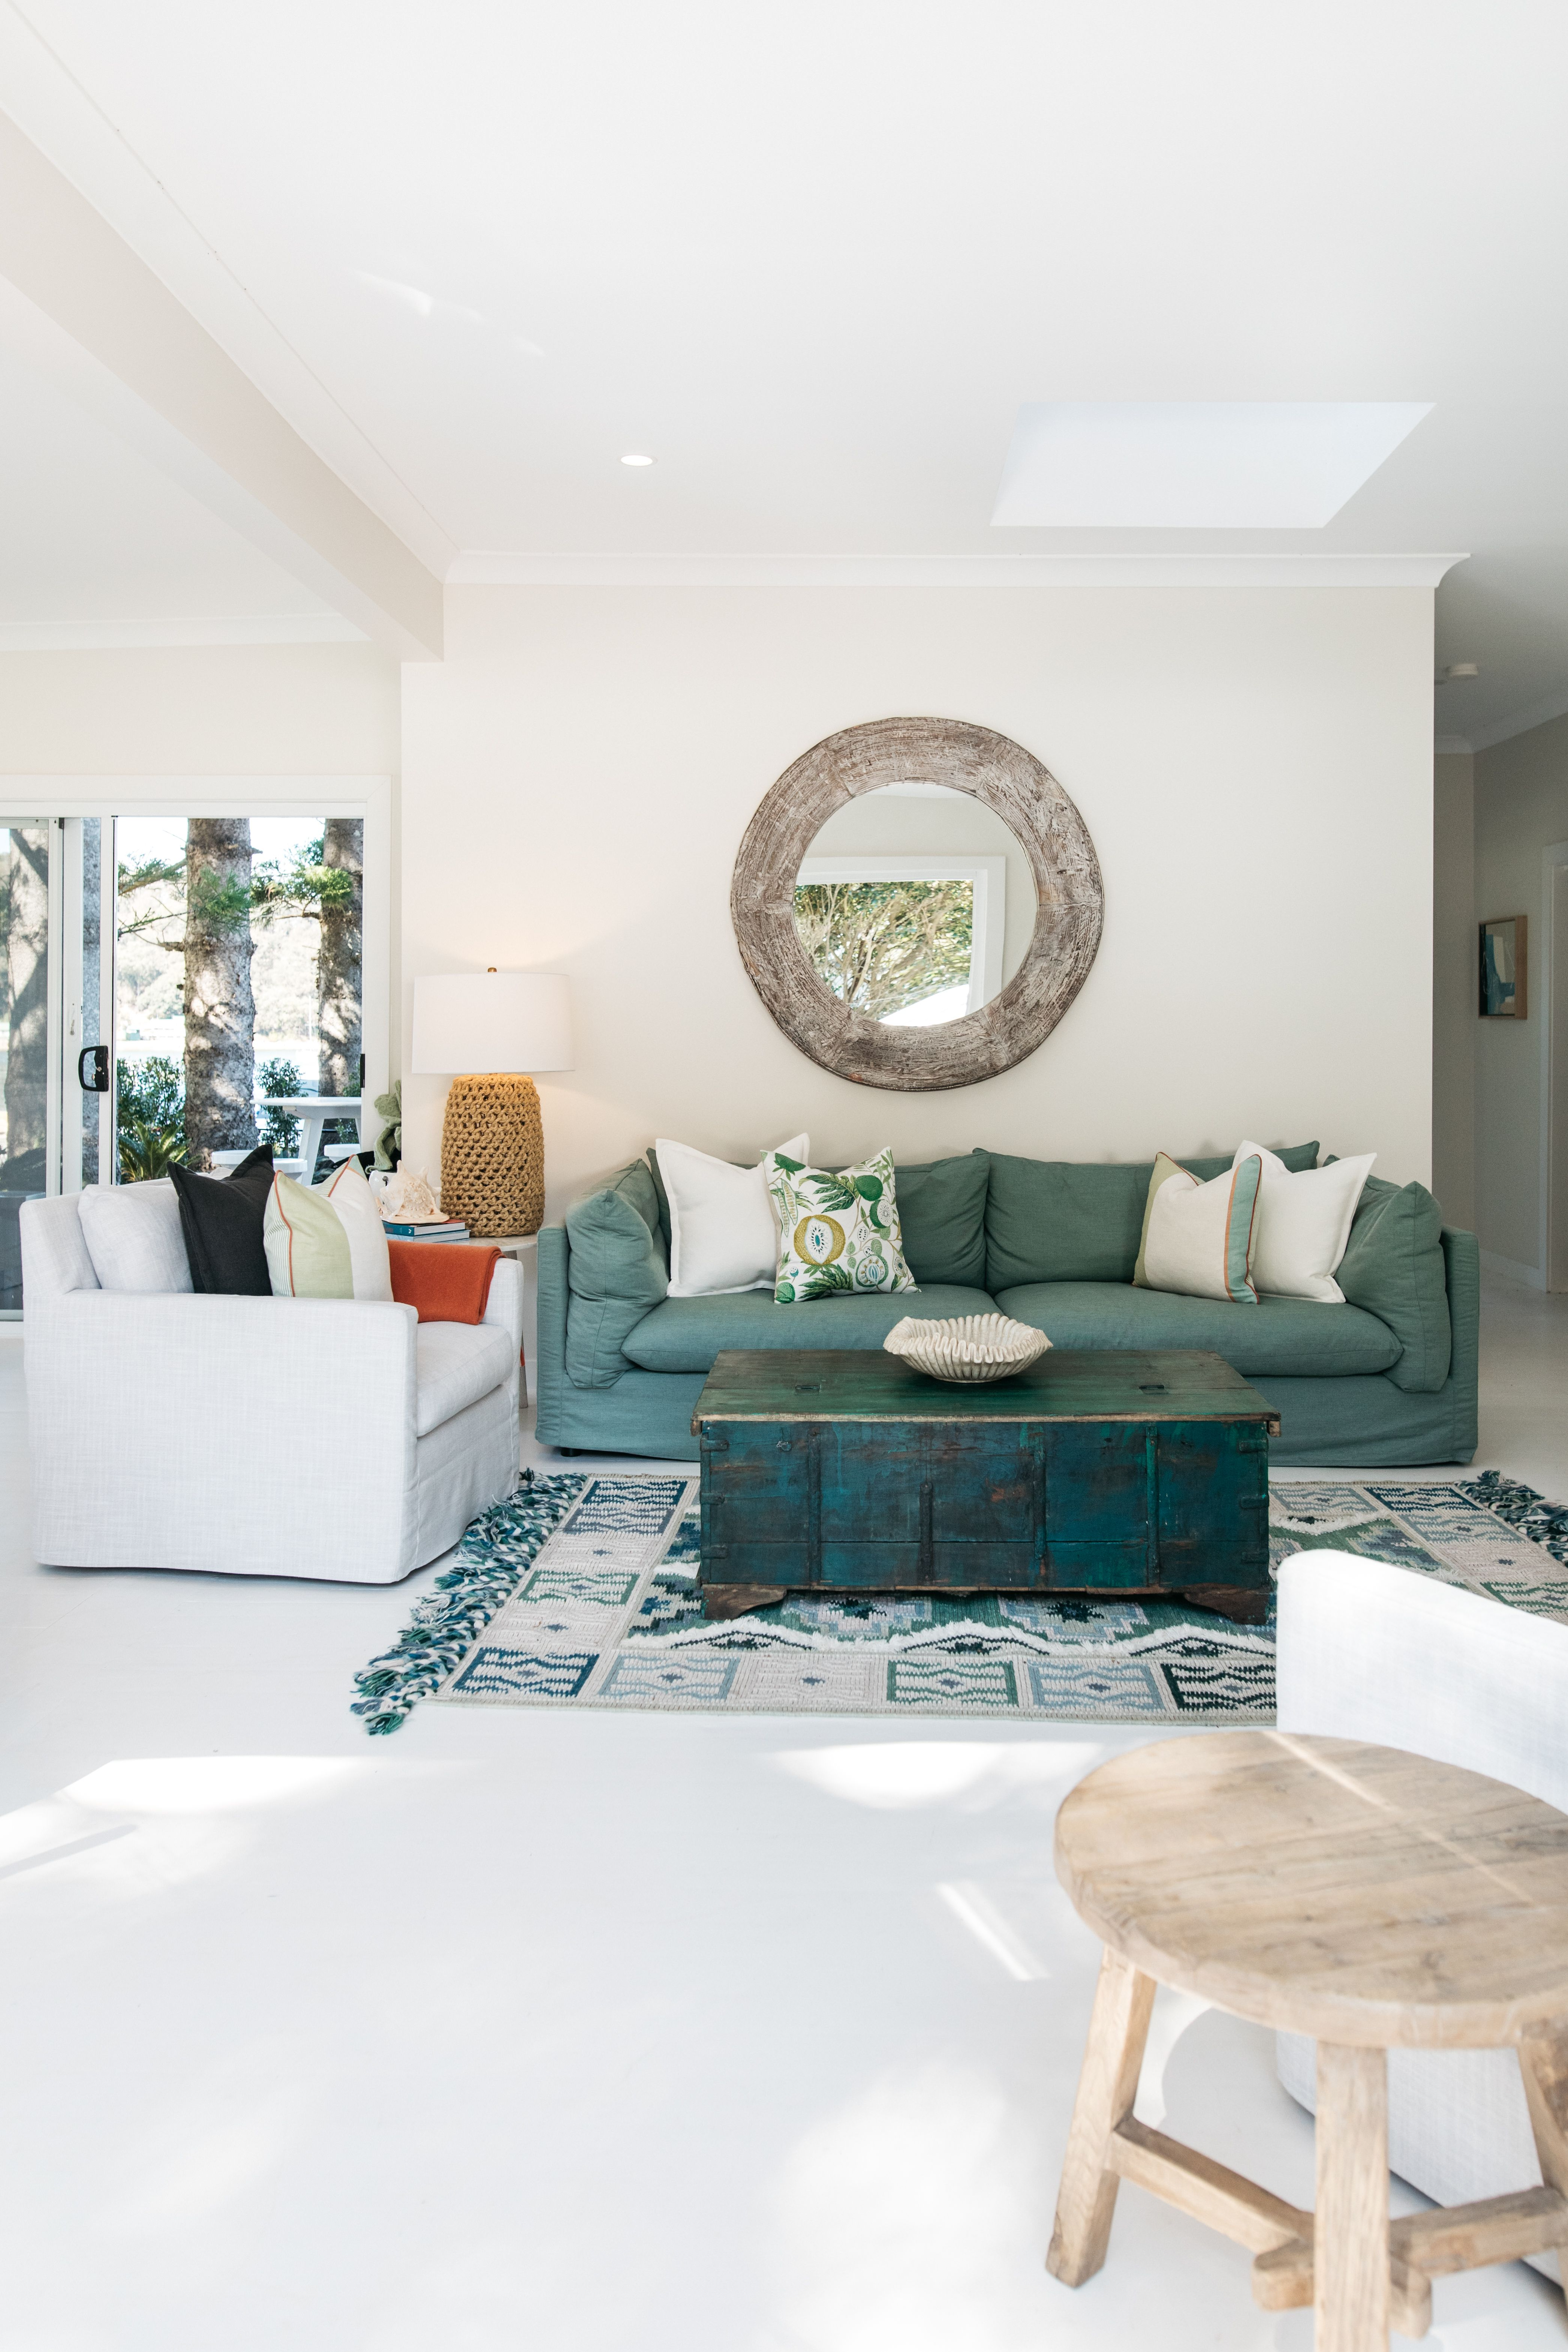 The living room interiors of The Patonga Cottage on the New South Wales Central Coast. All interiors sourced from the team at The Boathouse Home. #cushion #boathouse #hotel #interiors #livingroom #styling #livingroomdesigns #travel #newsouthwales